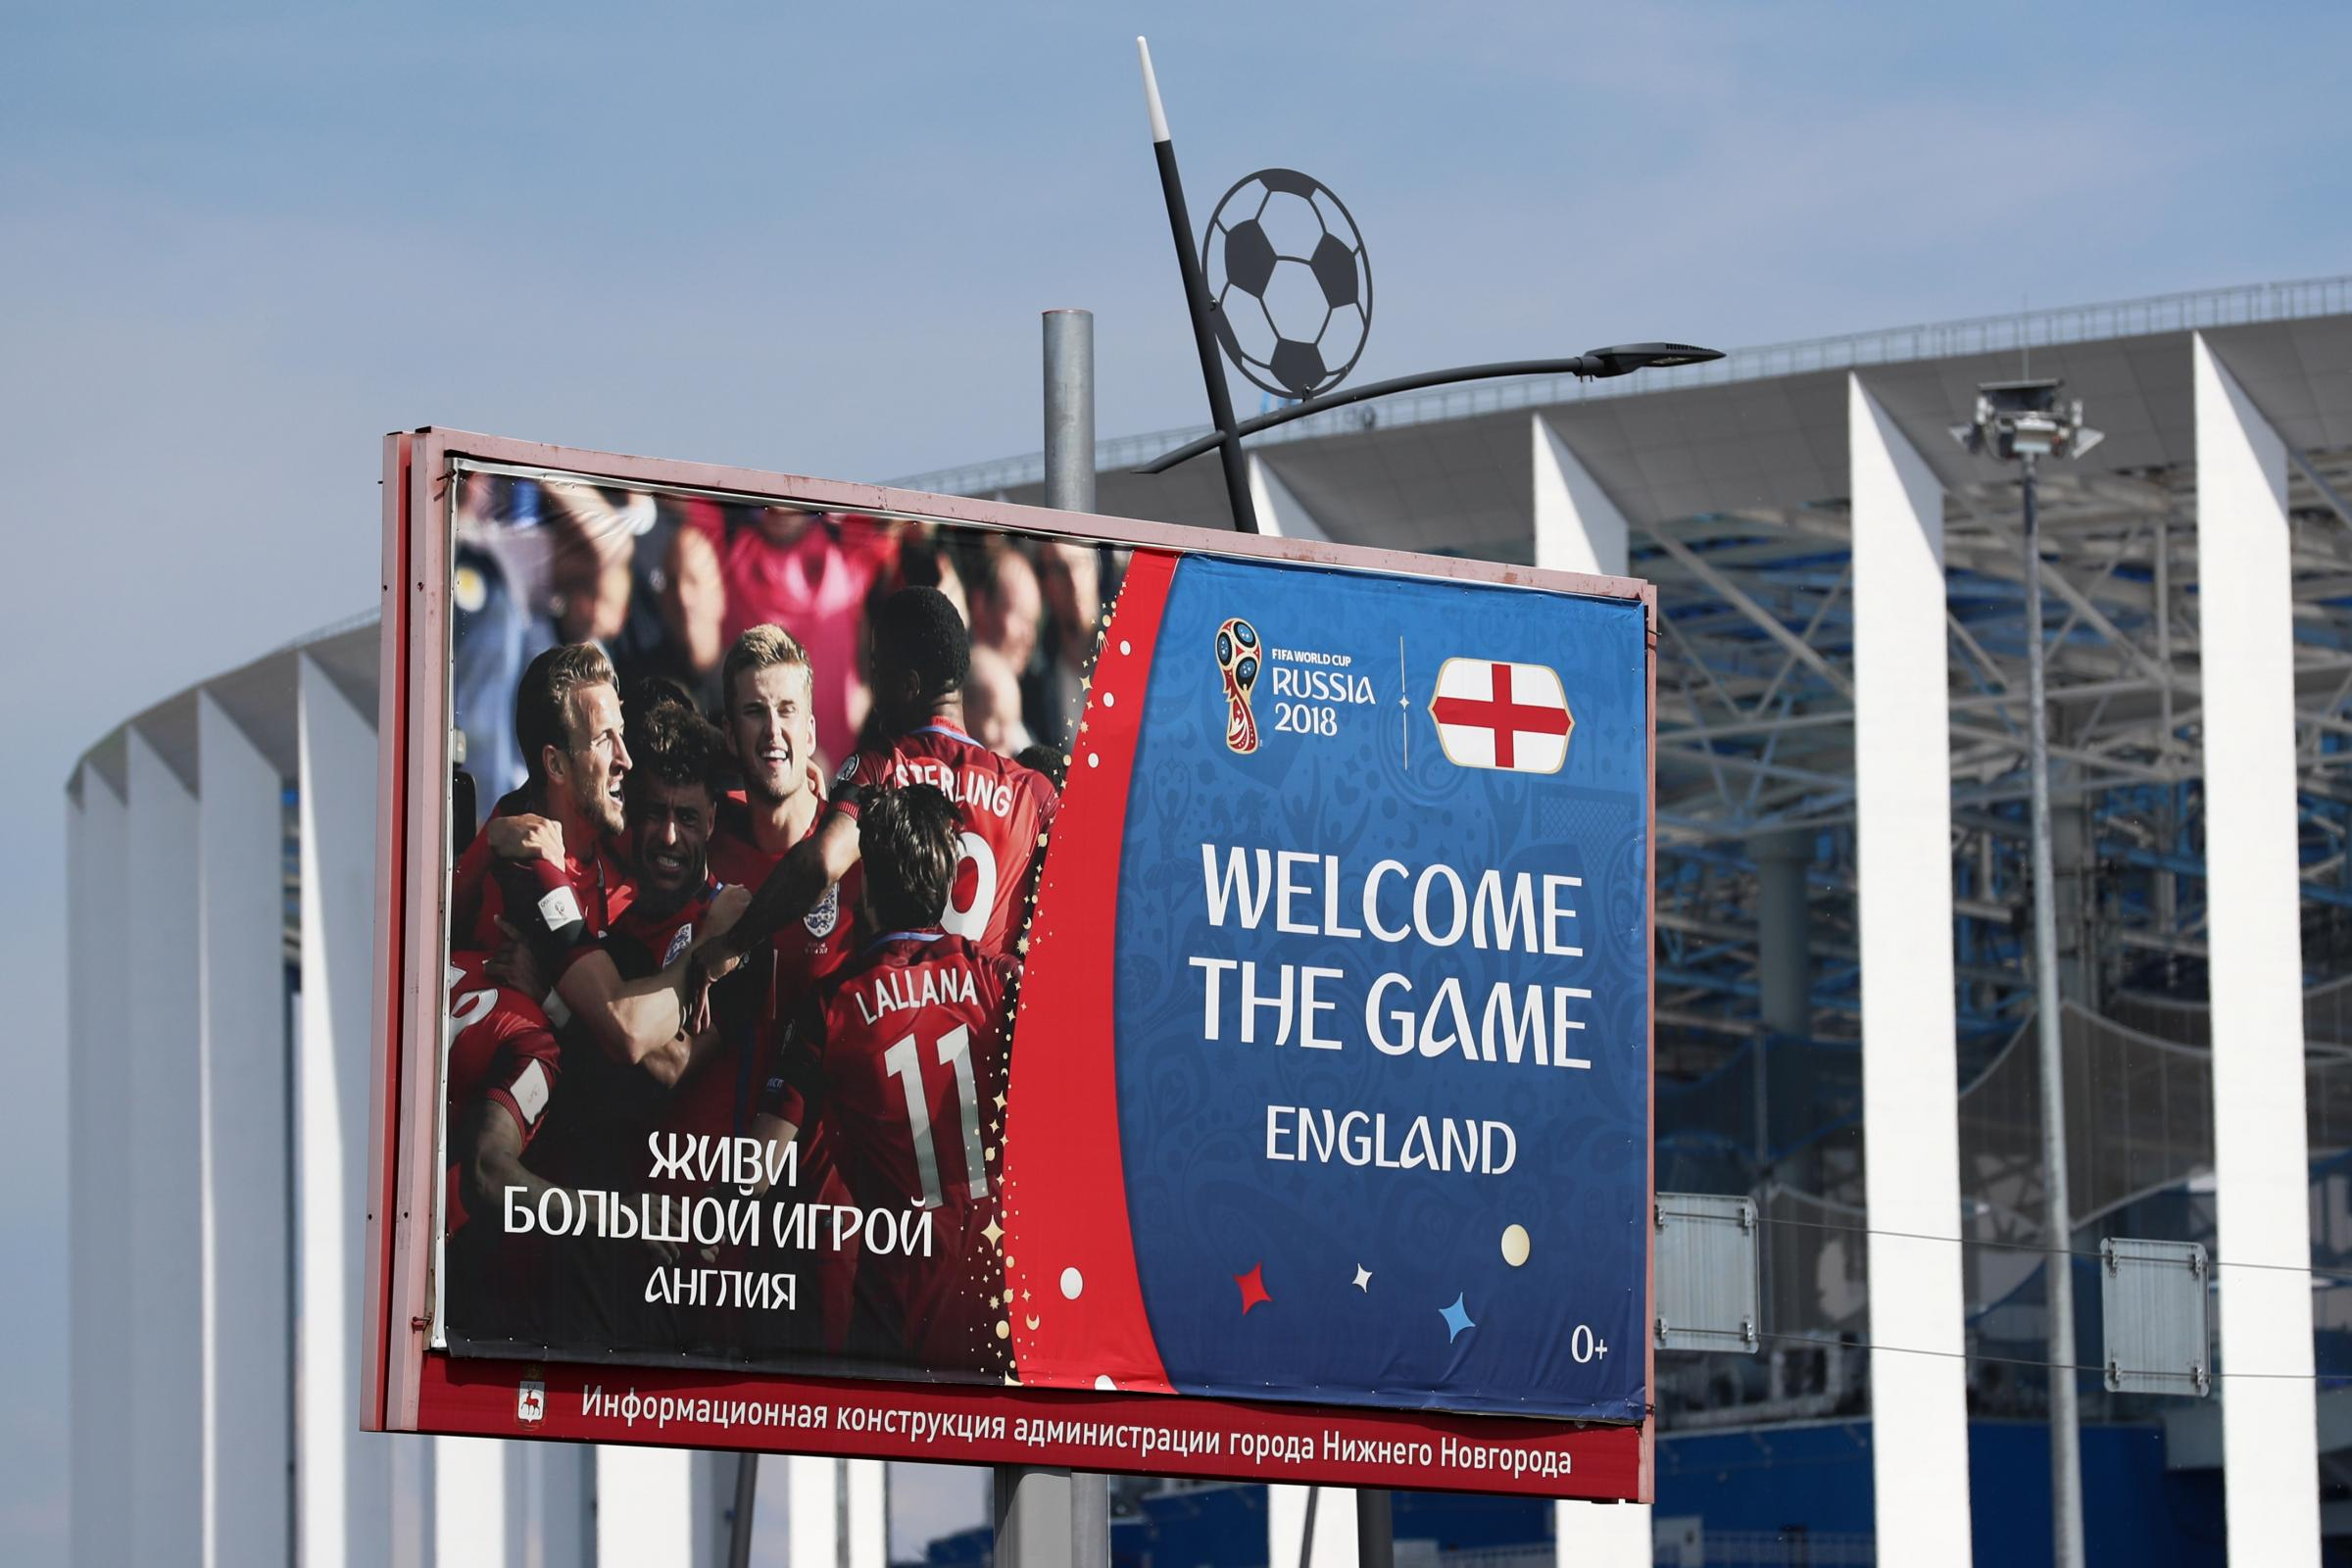 An advertising board welcomes England fans